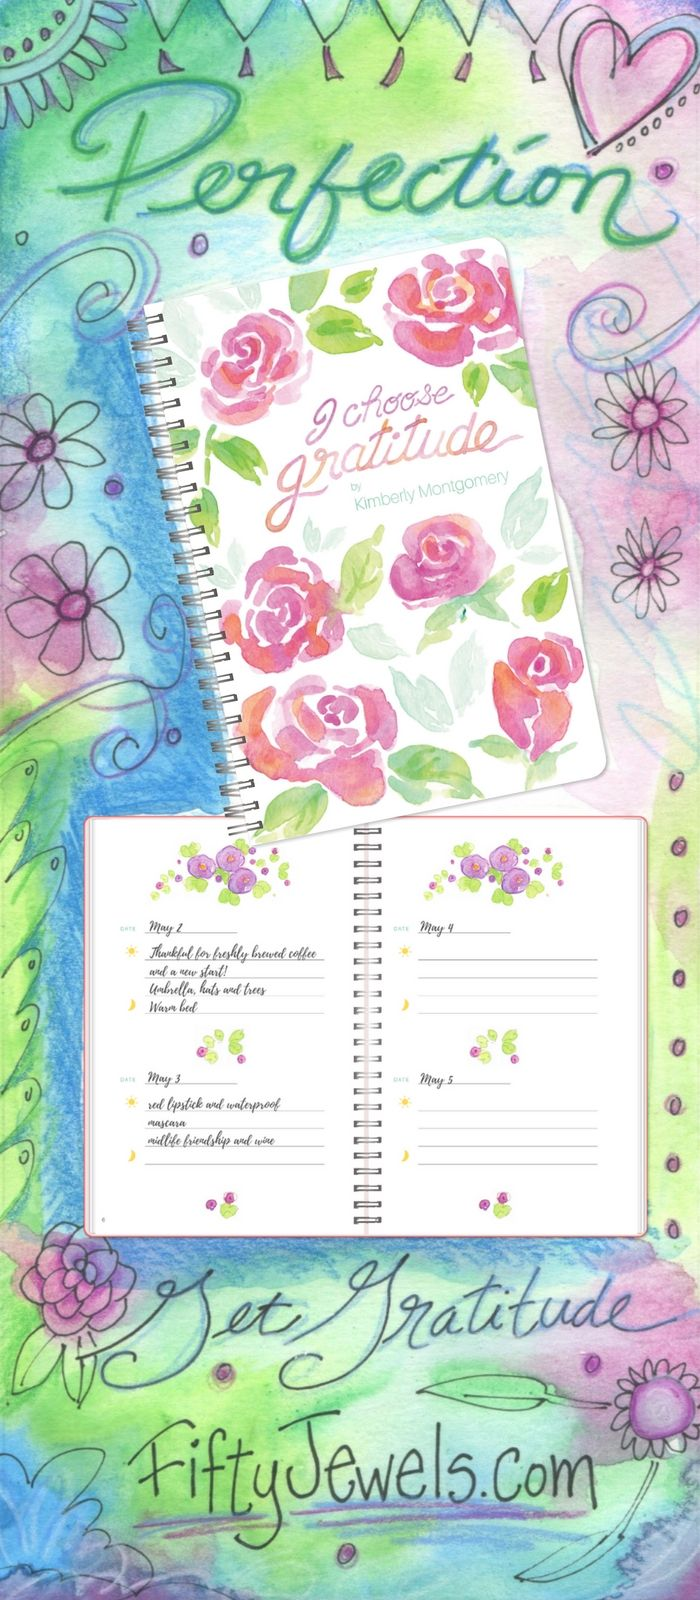 Get Happy with Gratitude in this most perfect place for all your blessings! Hand Illustrated, Limited Edition -- you'll want to have one for your own and several for gifts. Pin for later & CLICK now to learn more! http://FiftyJewels.com #gratitude #happiness #journal